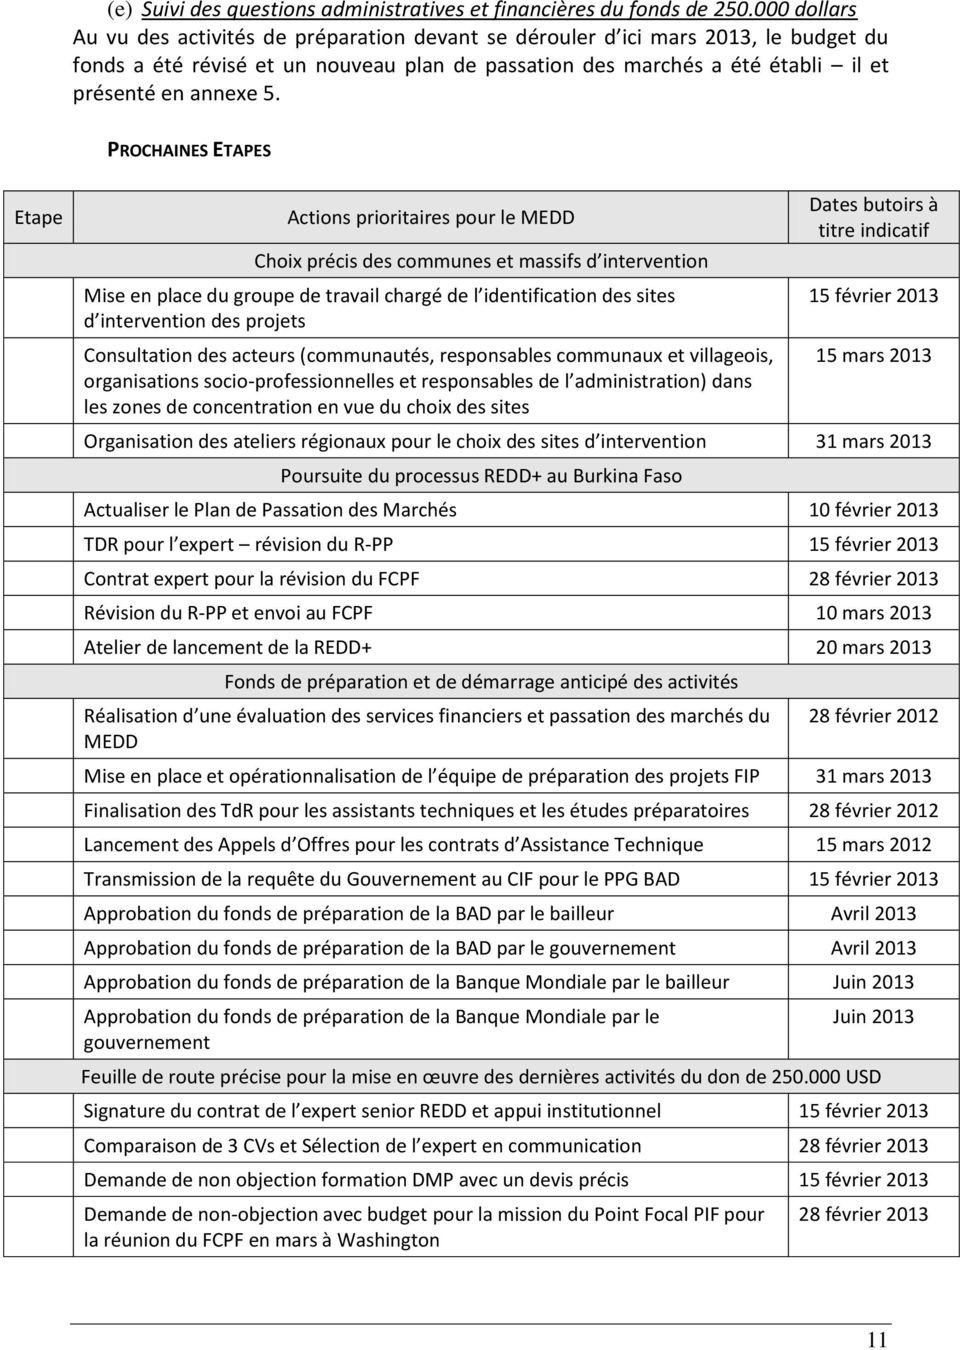 PROCHAINES ETAPES Etape Actions prioritaires pour le MEDD Choix précis des communes et massifs d intervention Mise en place du groupe de travail chargé de l identification des sites d intervention